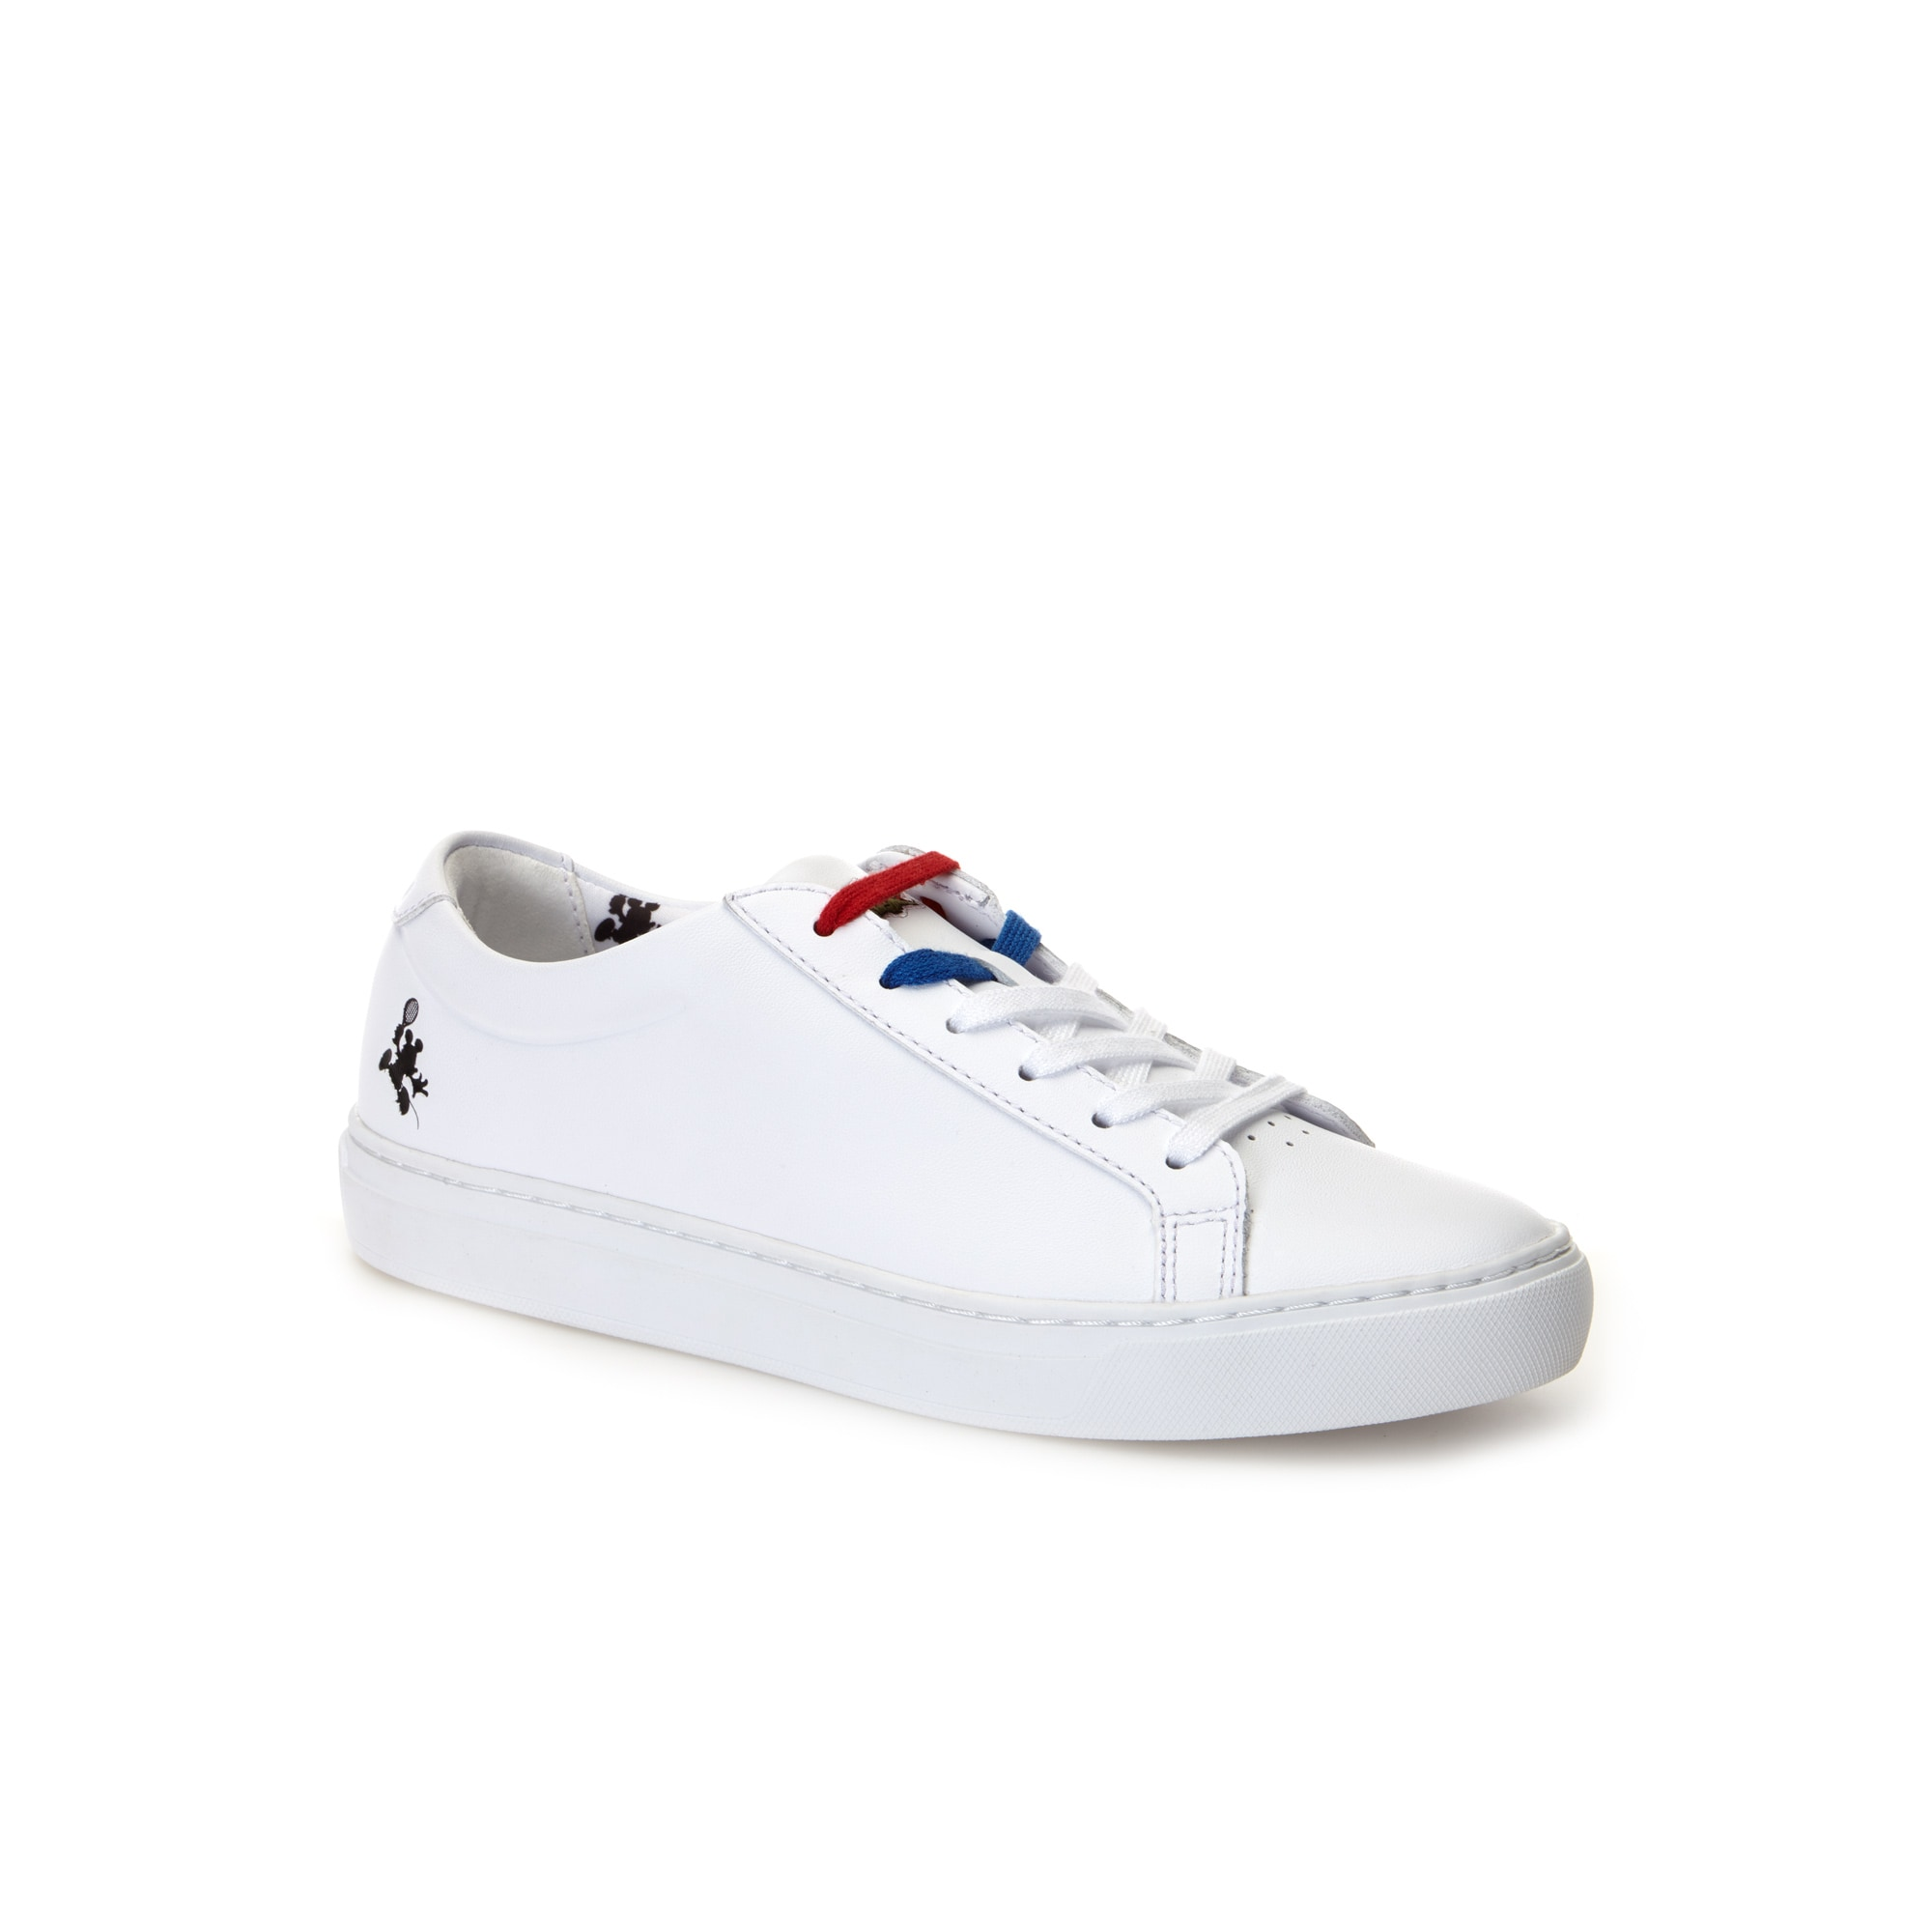 Women s L.12.12 Lacoste Disney Sneakers 0462afdc2